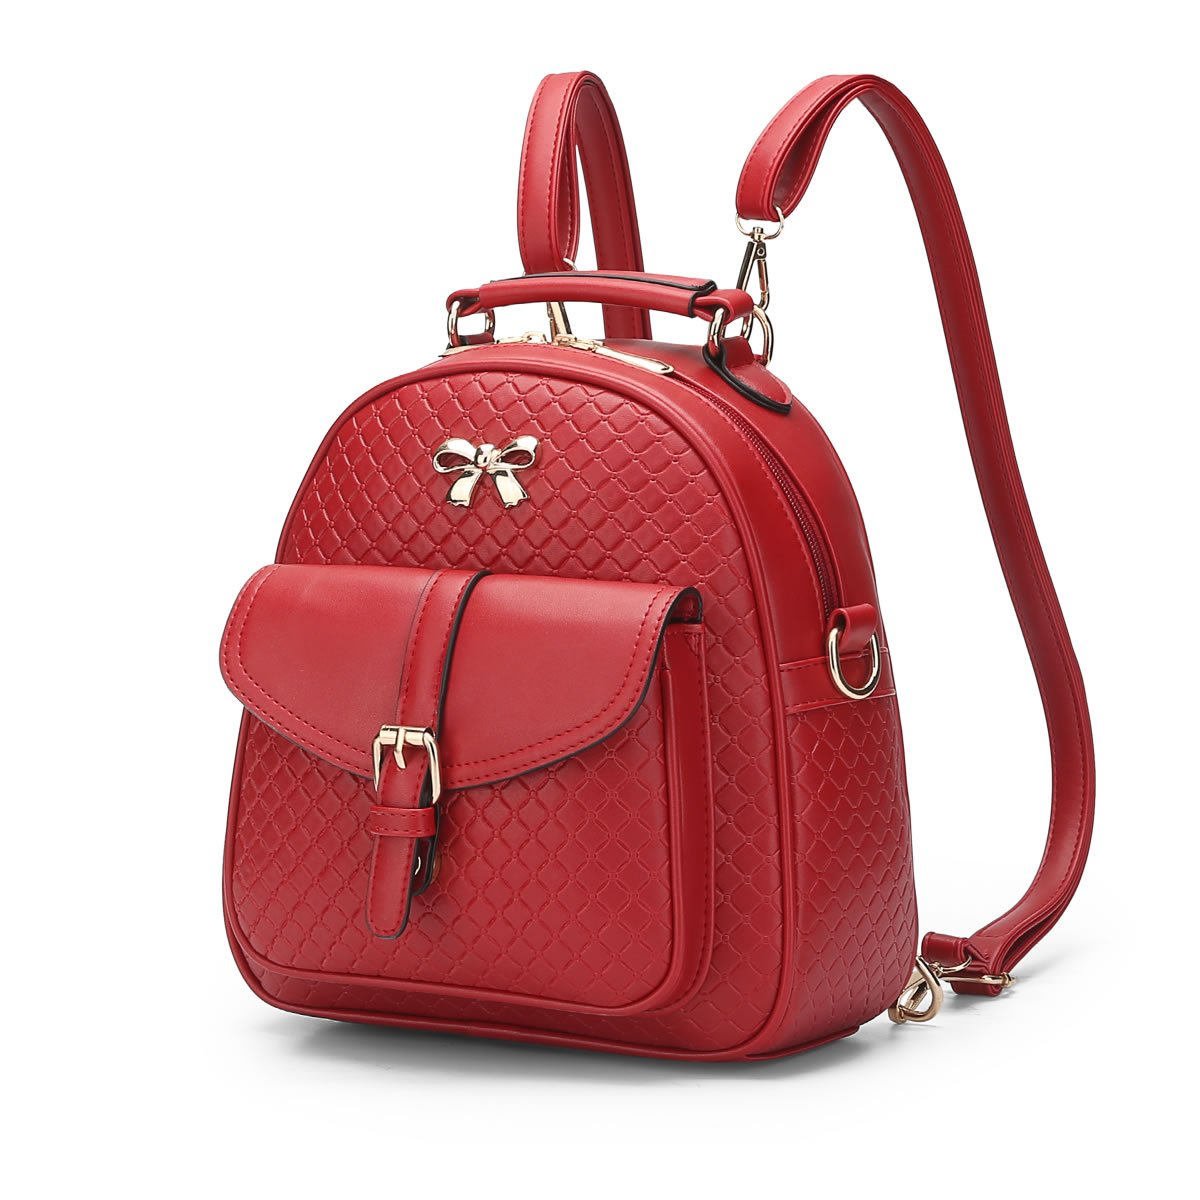 MSZYZ Women's shoulder bag spring and summer young girl's small backpack,gules,24.51026CM